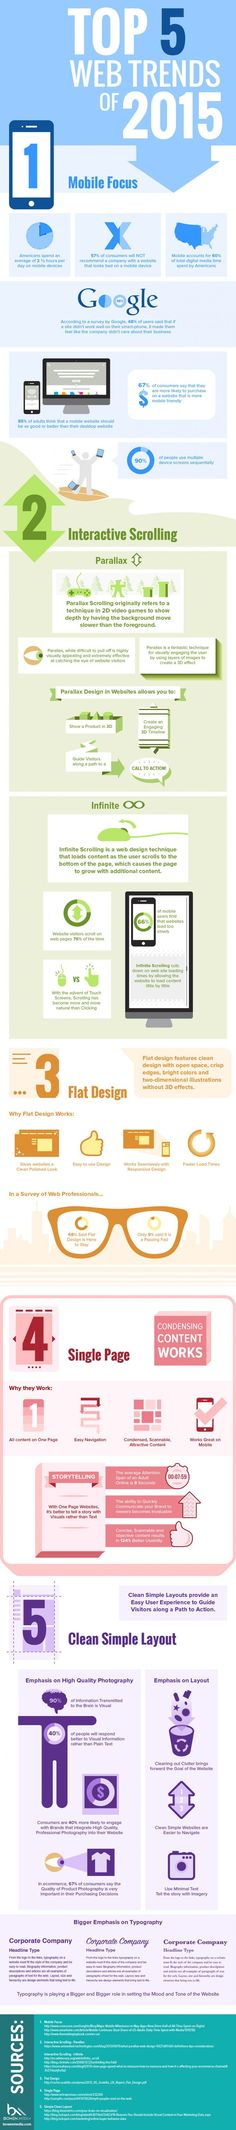 Top 5 Tendances Web in 2015 #infographic #design #in